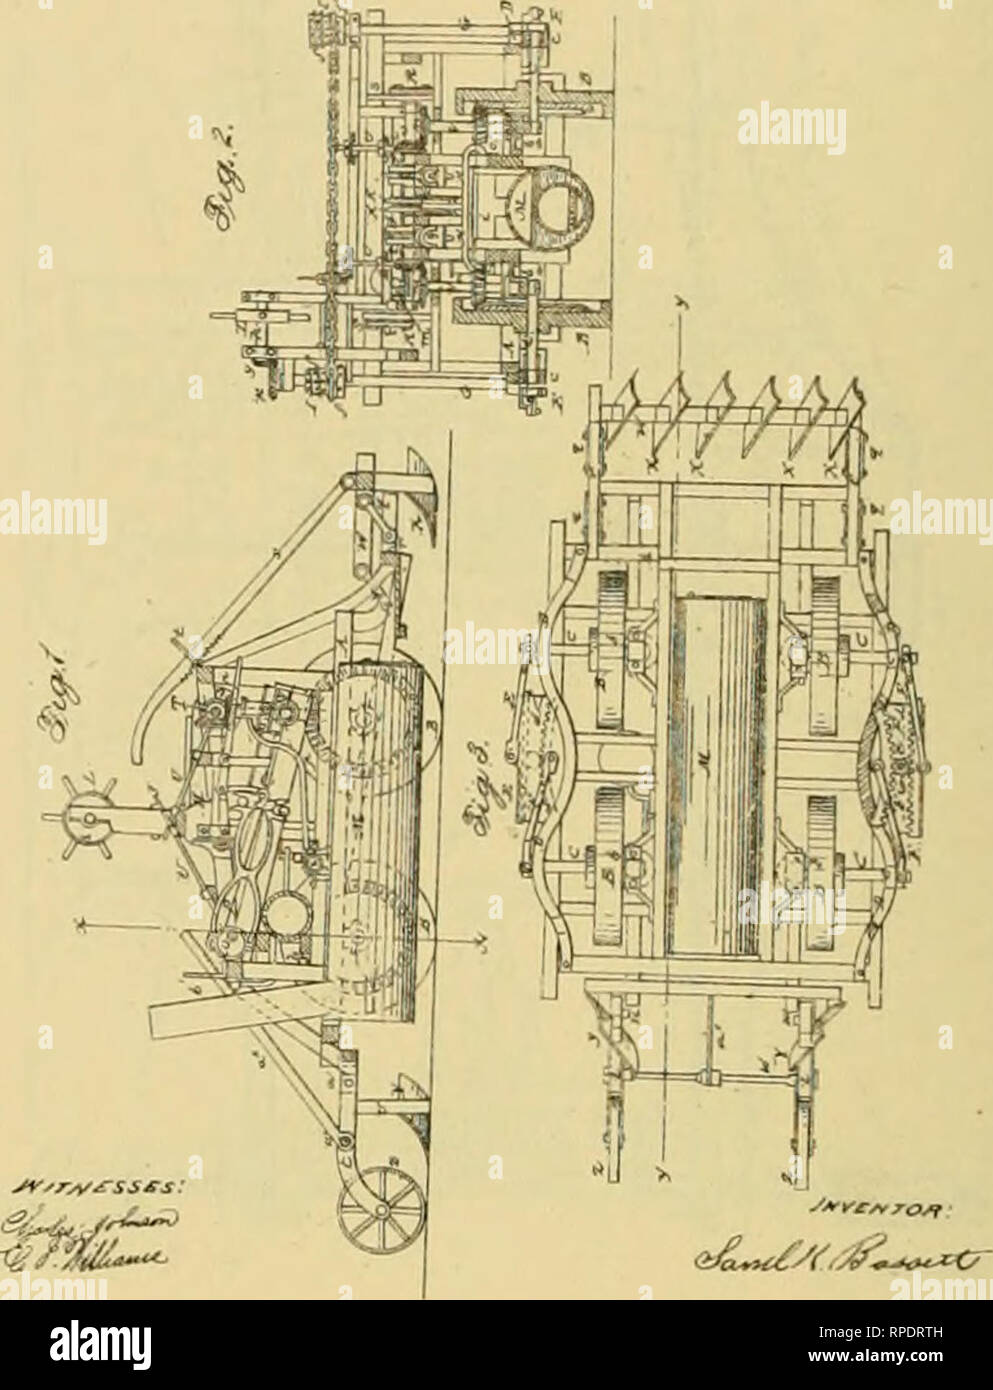 . Allen's digest of plows, with attachments, patented in the United States from A.D. 1789 to January 1883 ... Plows; Patents. !1 K BA8SETT Steam-Plow, No. 22.848 Patented F*>b. 8, 18&!). J, W. GOODELL. Ste^m-Plow. J, HAWKINS. Steara-Plow Patented Apr. 26, 1859 Patented Oct 18, 1859 J-^.2.. Please note that these images are extracted from scanned page images that may have been digitally enhanced for readability - coloration and appearance of these illustrations may not perfectly resemble the original work.. Allen, James T. (James Titus). [Washington, D. C. , Joseph Bart, Printer - Stock Image